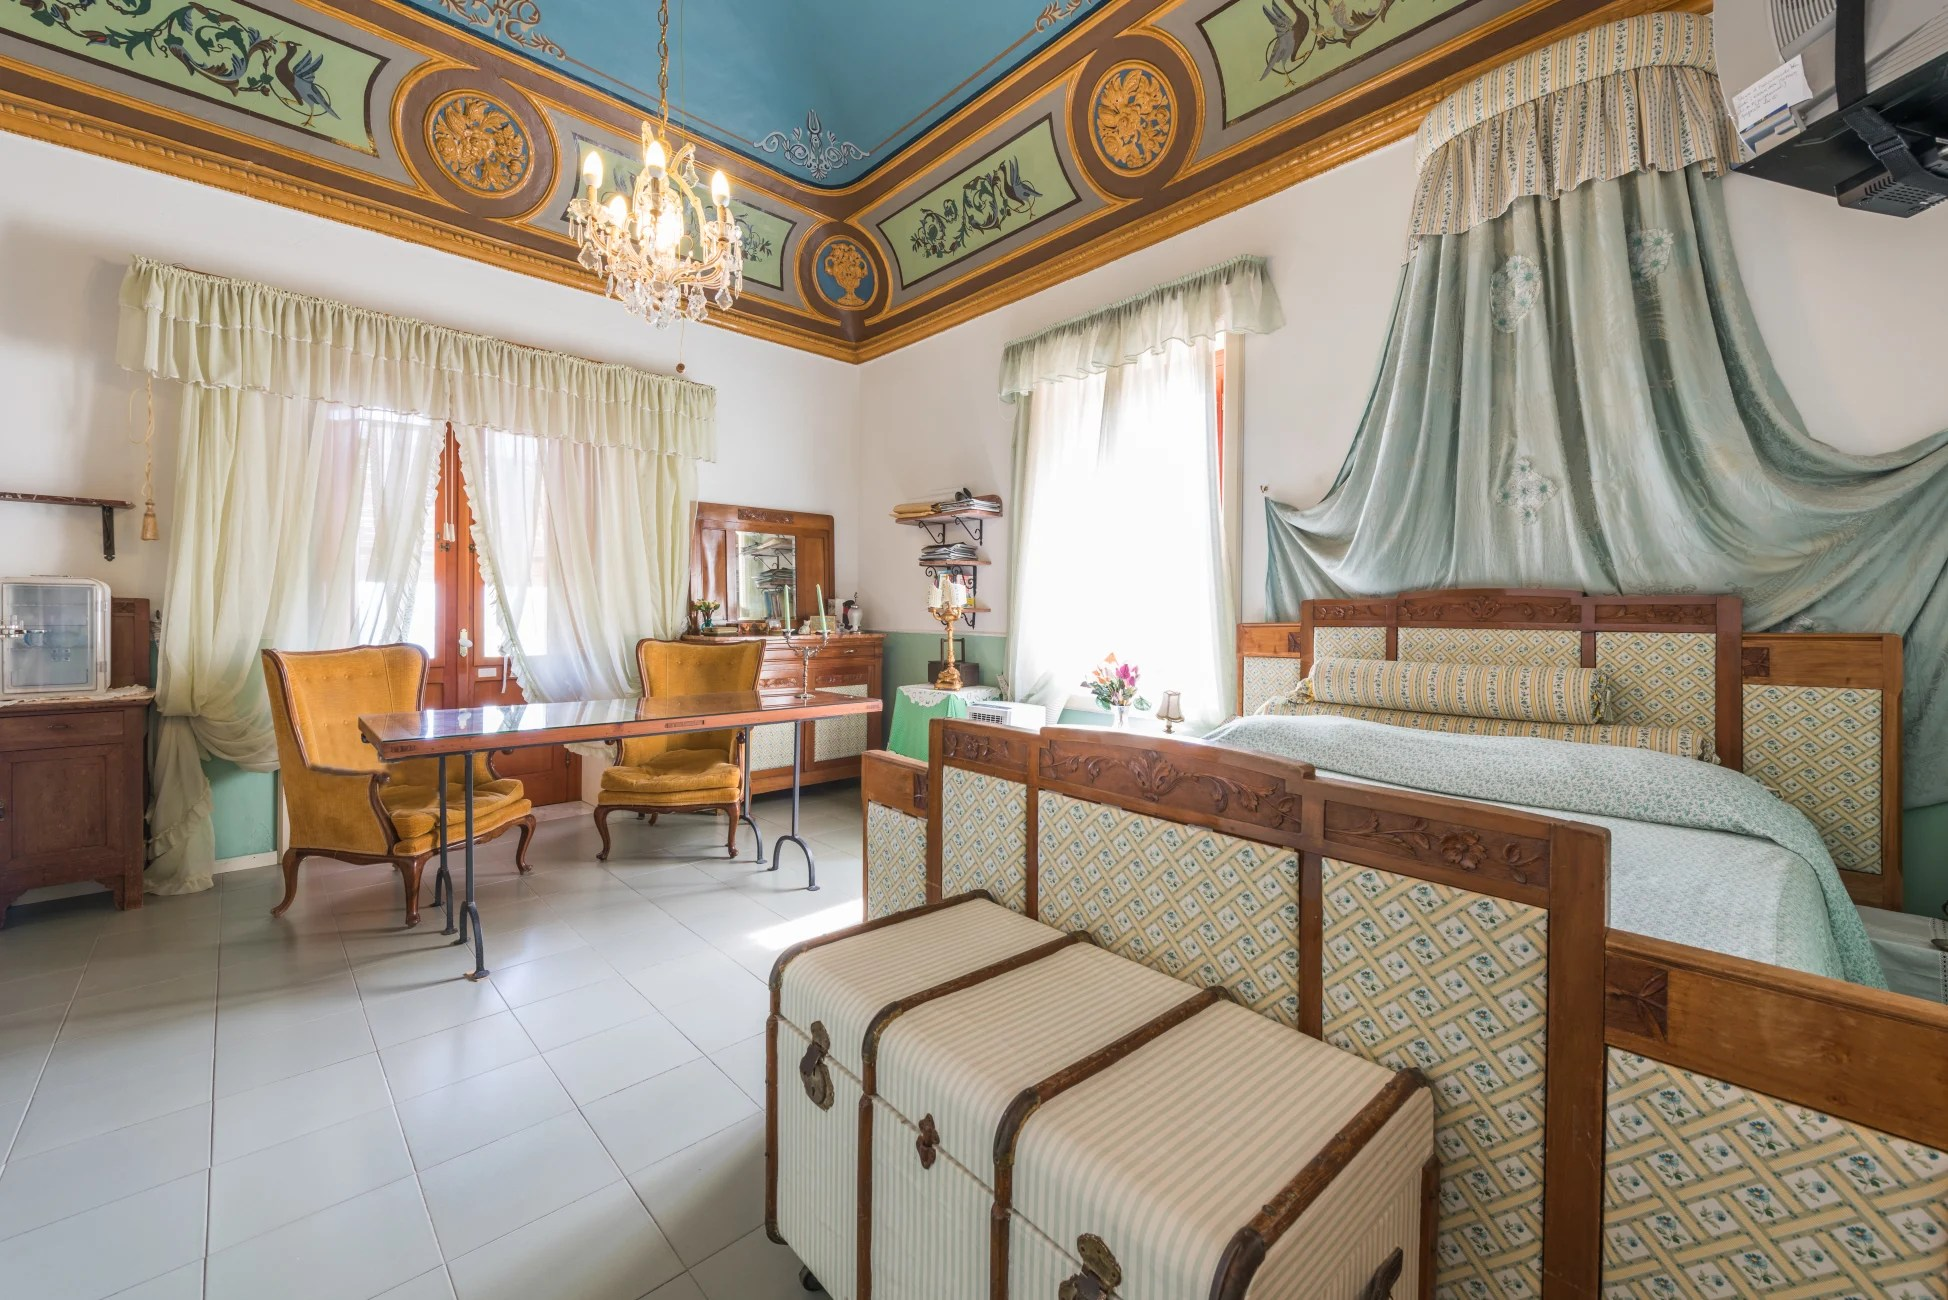 Bagno Vela Punta Marina Bed Breakfast Villa Mariella Pittorino Leni Trivago Co Uk